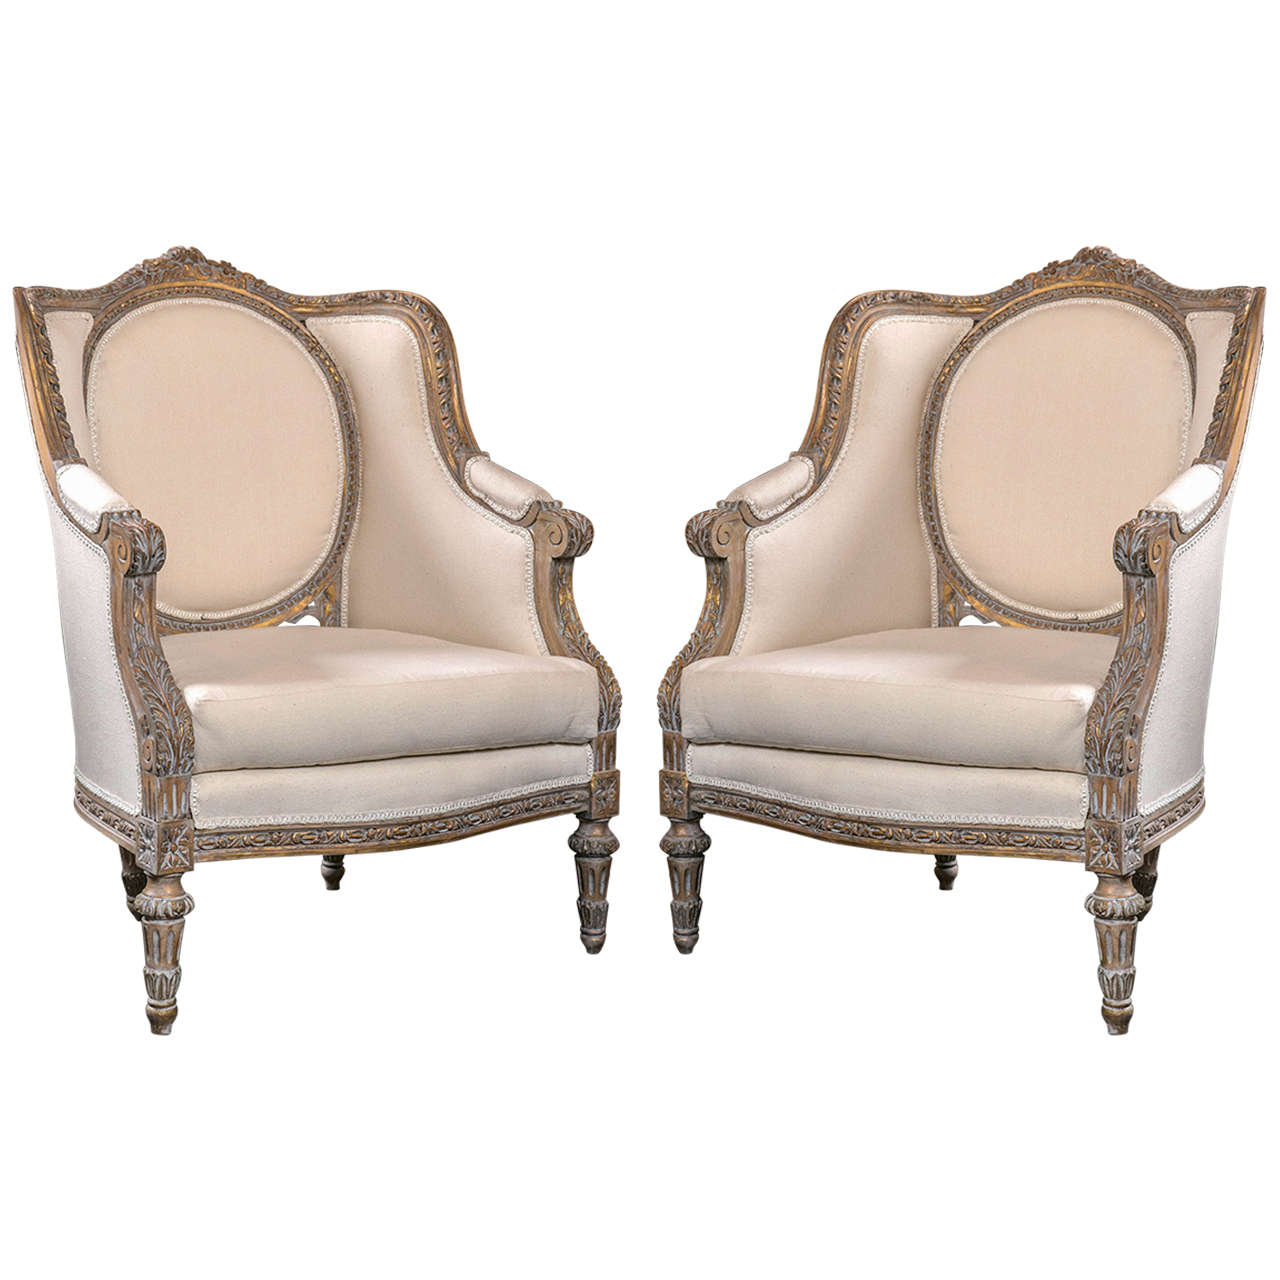 Antique bergere chair - Pair Of Vintage French Louis Xvi Style Bergere Chairs 1